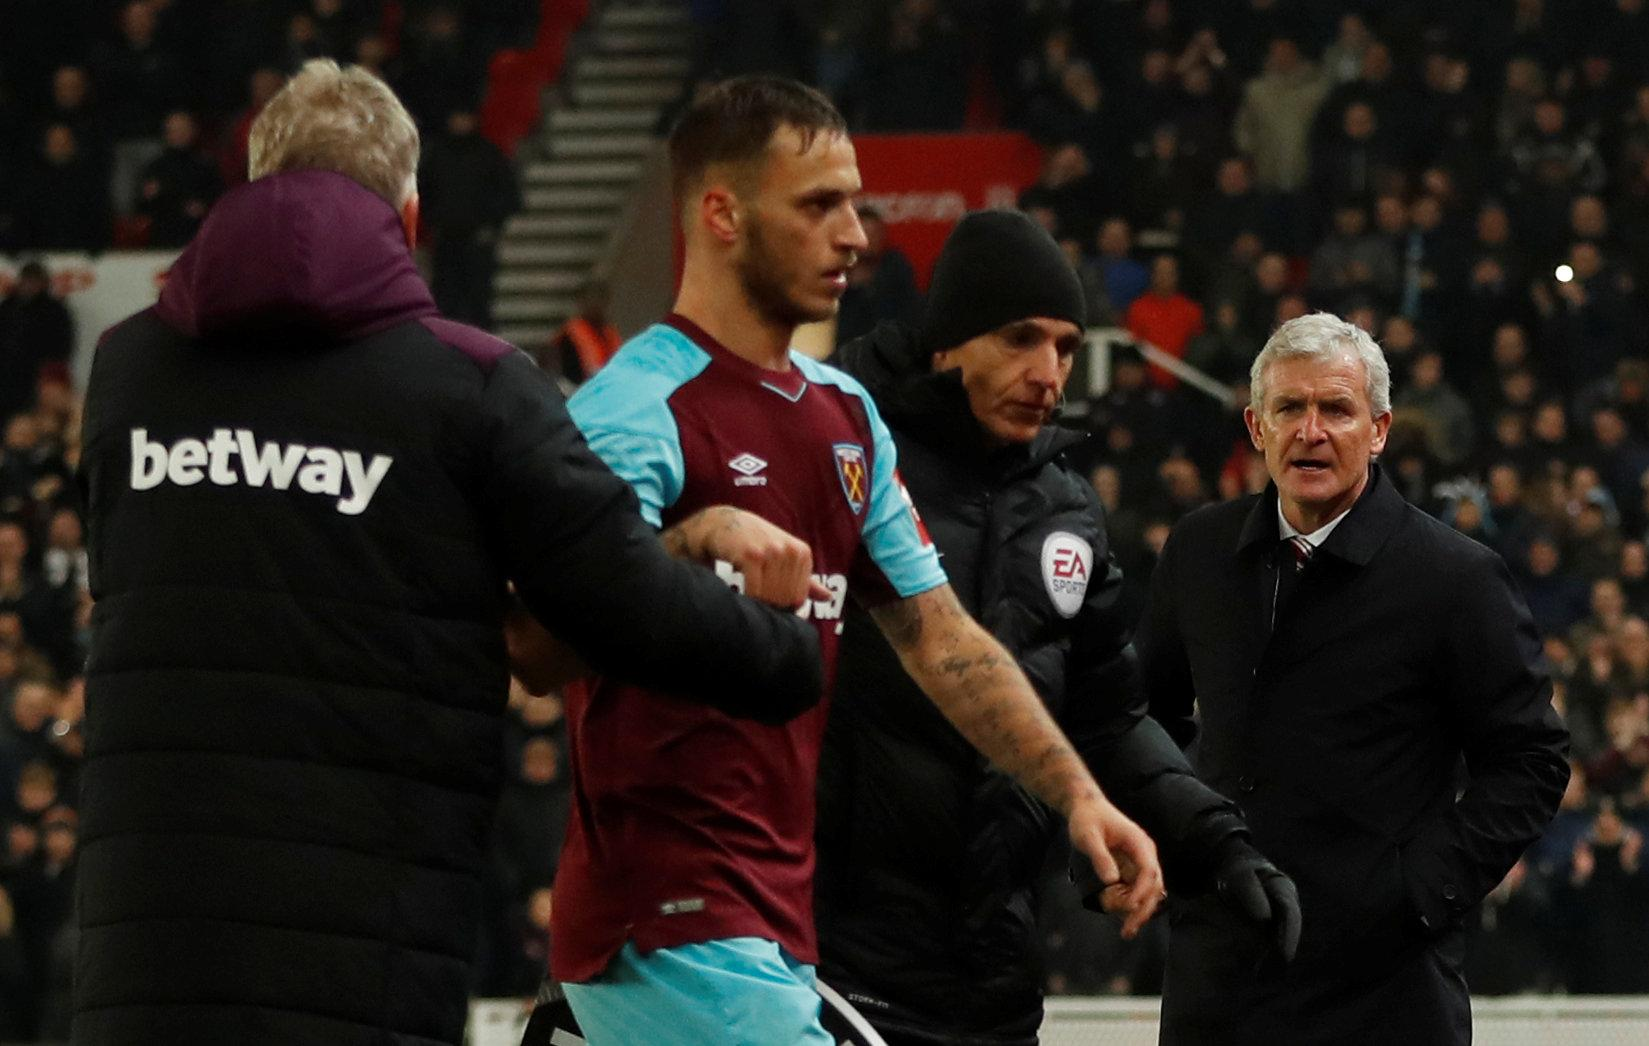 Hughes wasn't happy with him when he scored against Stoke back in December